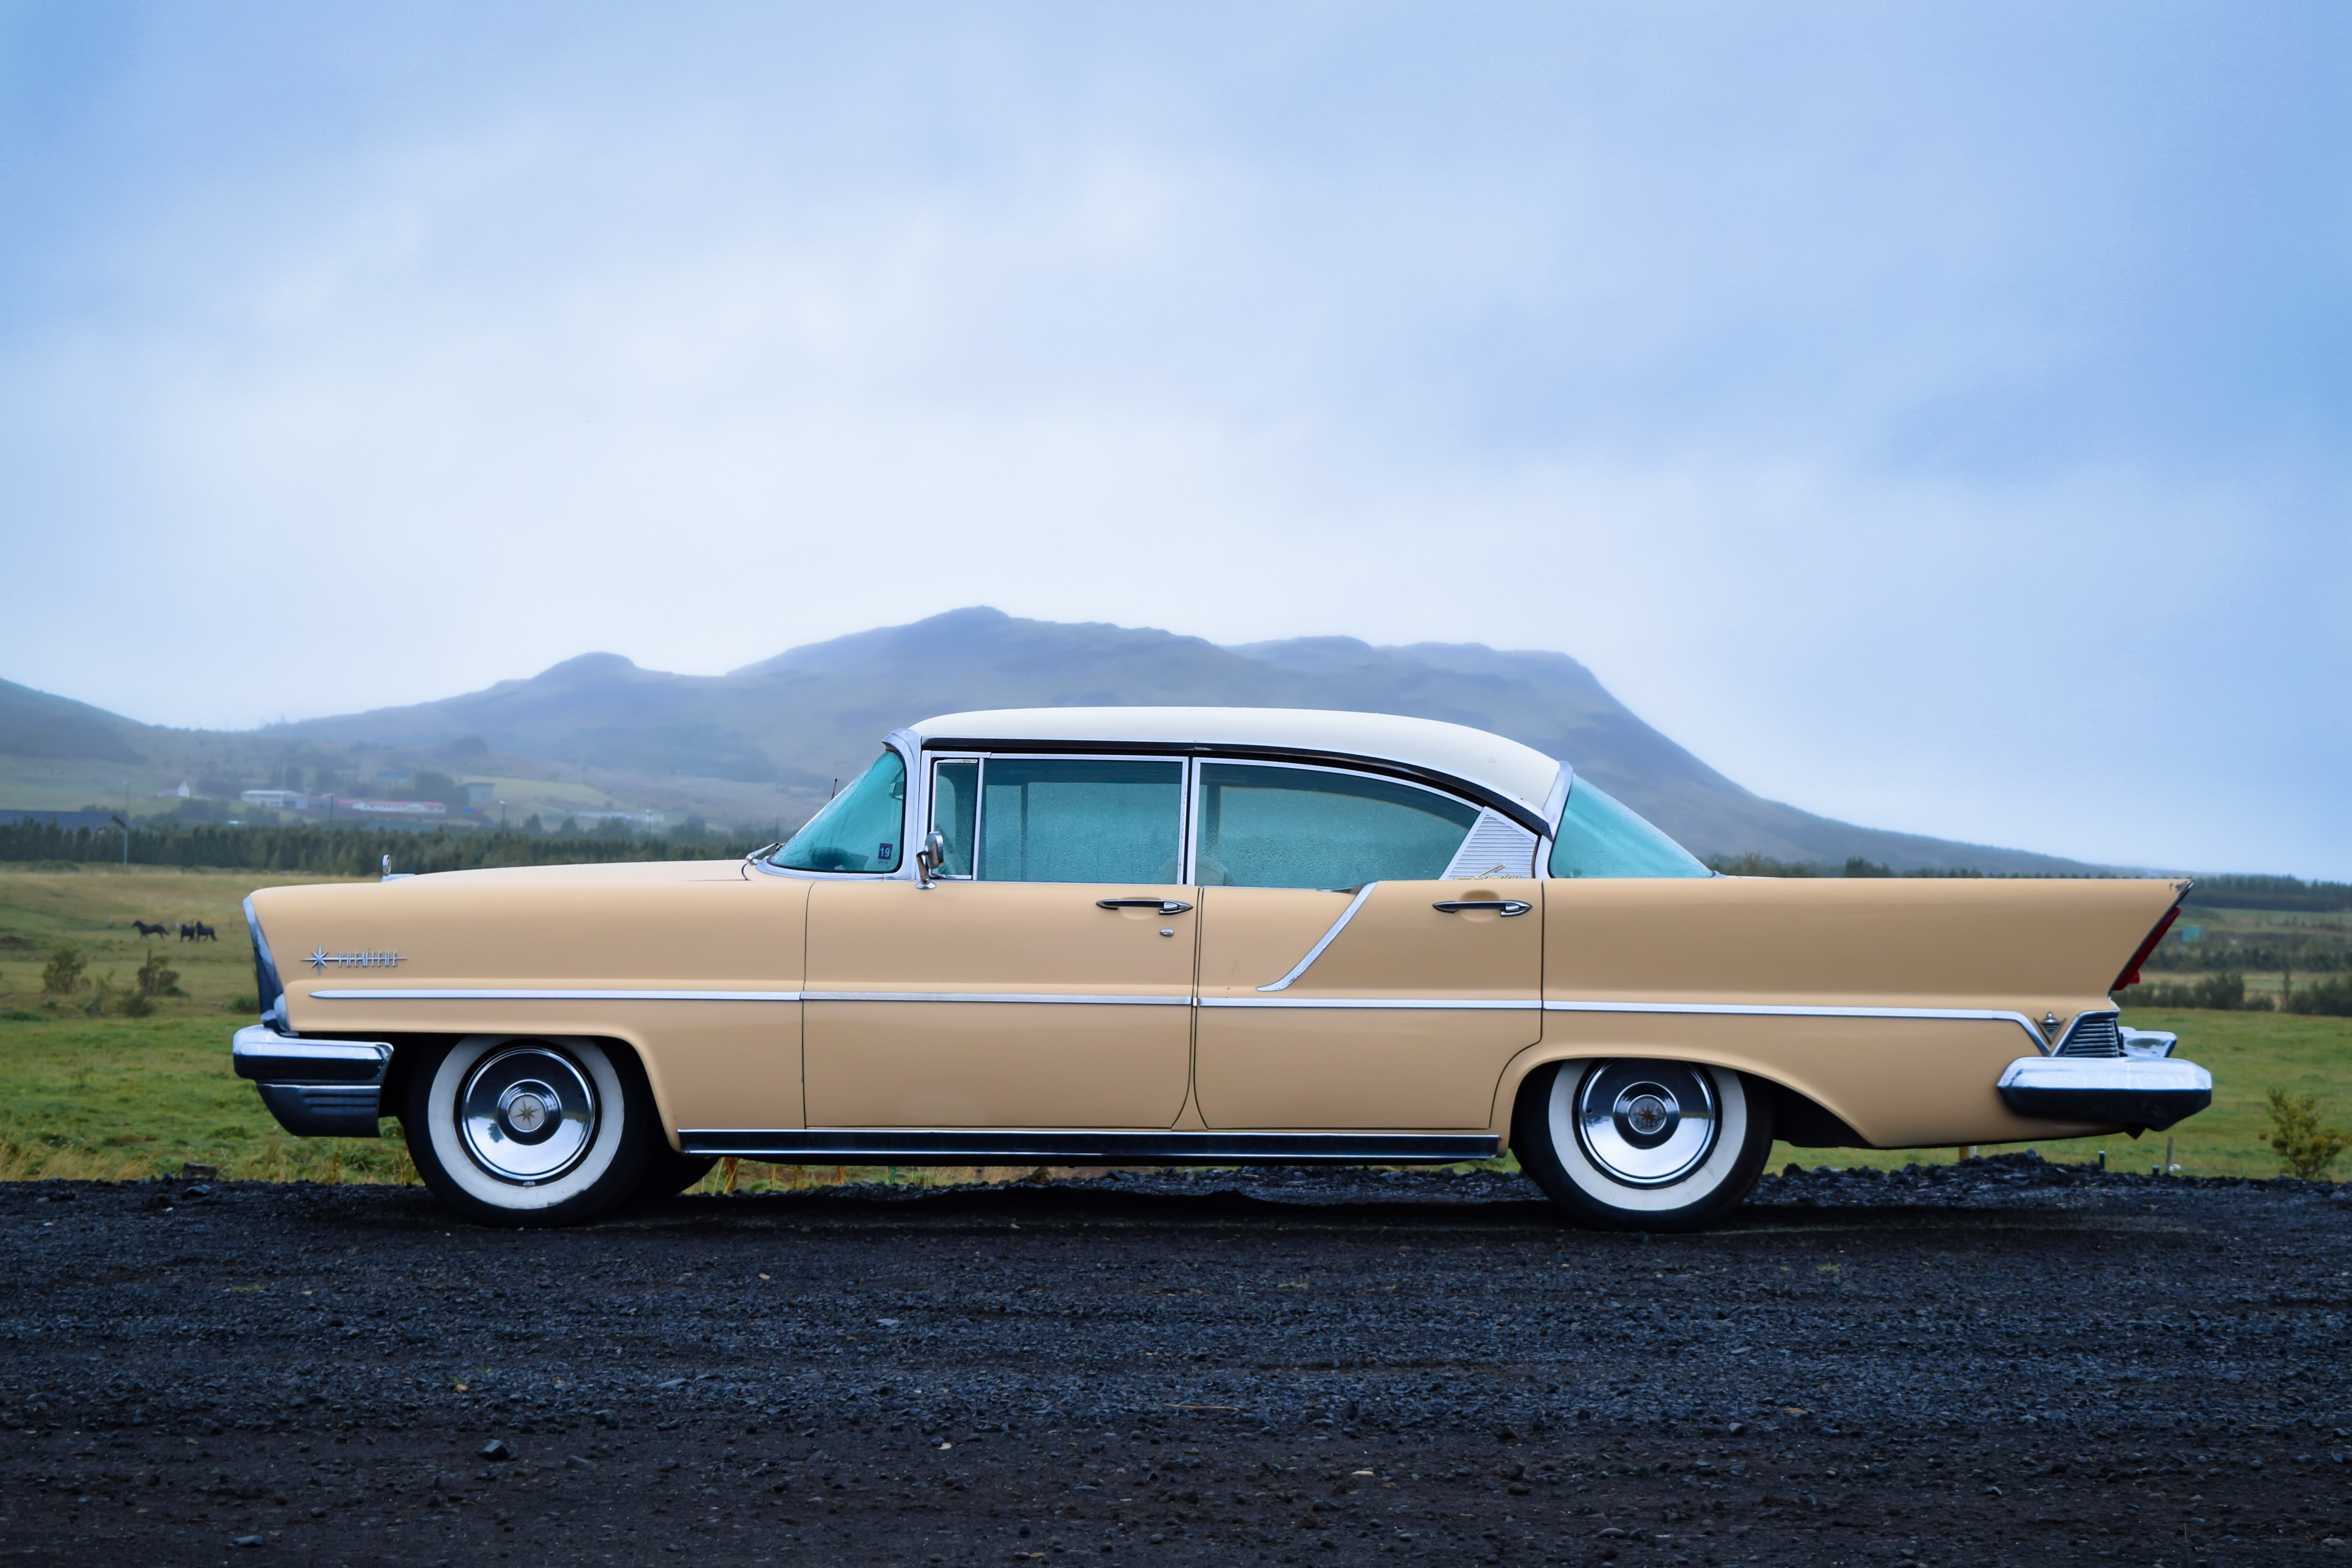 vintage beige sedan on the road